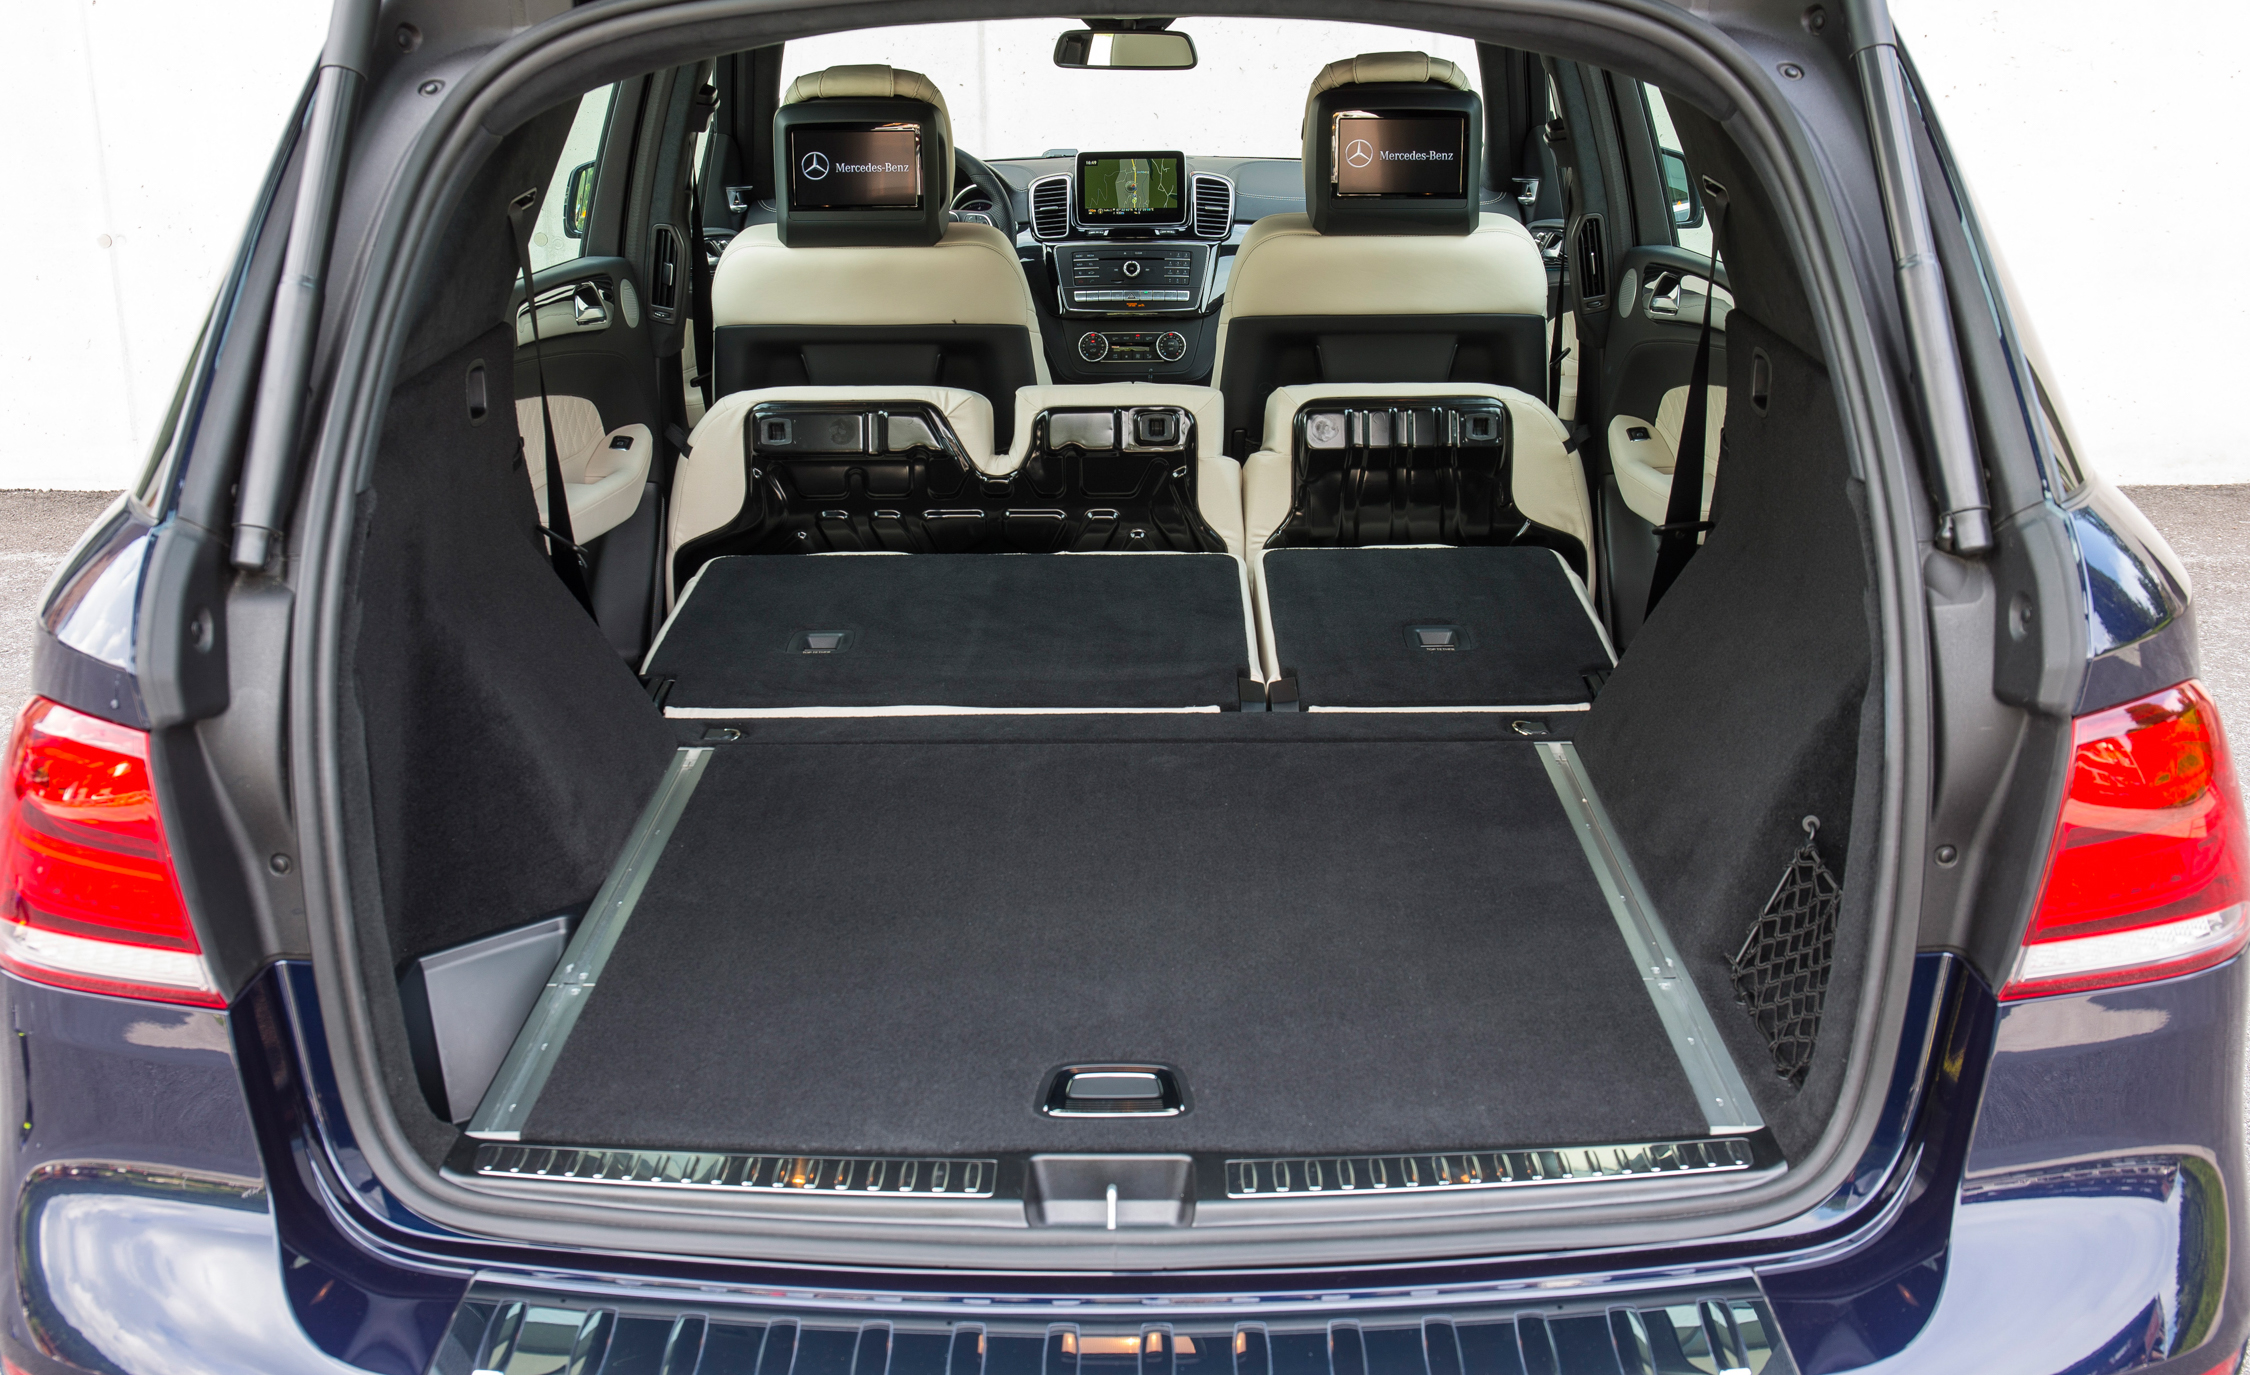 2016 Mercedes-Benz GLE250d 4MATIC Interior Cargo Space